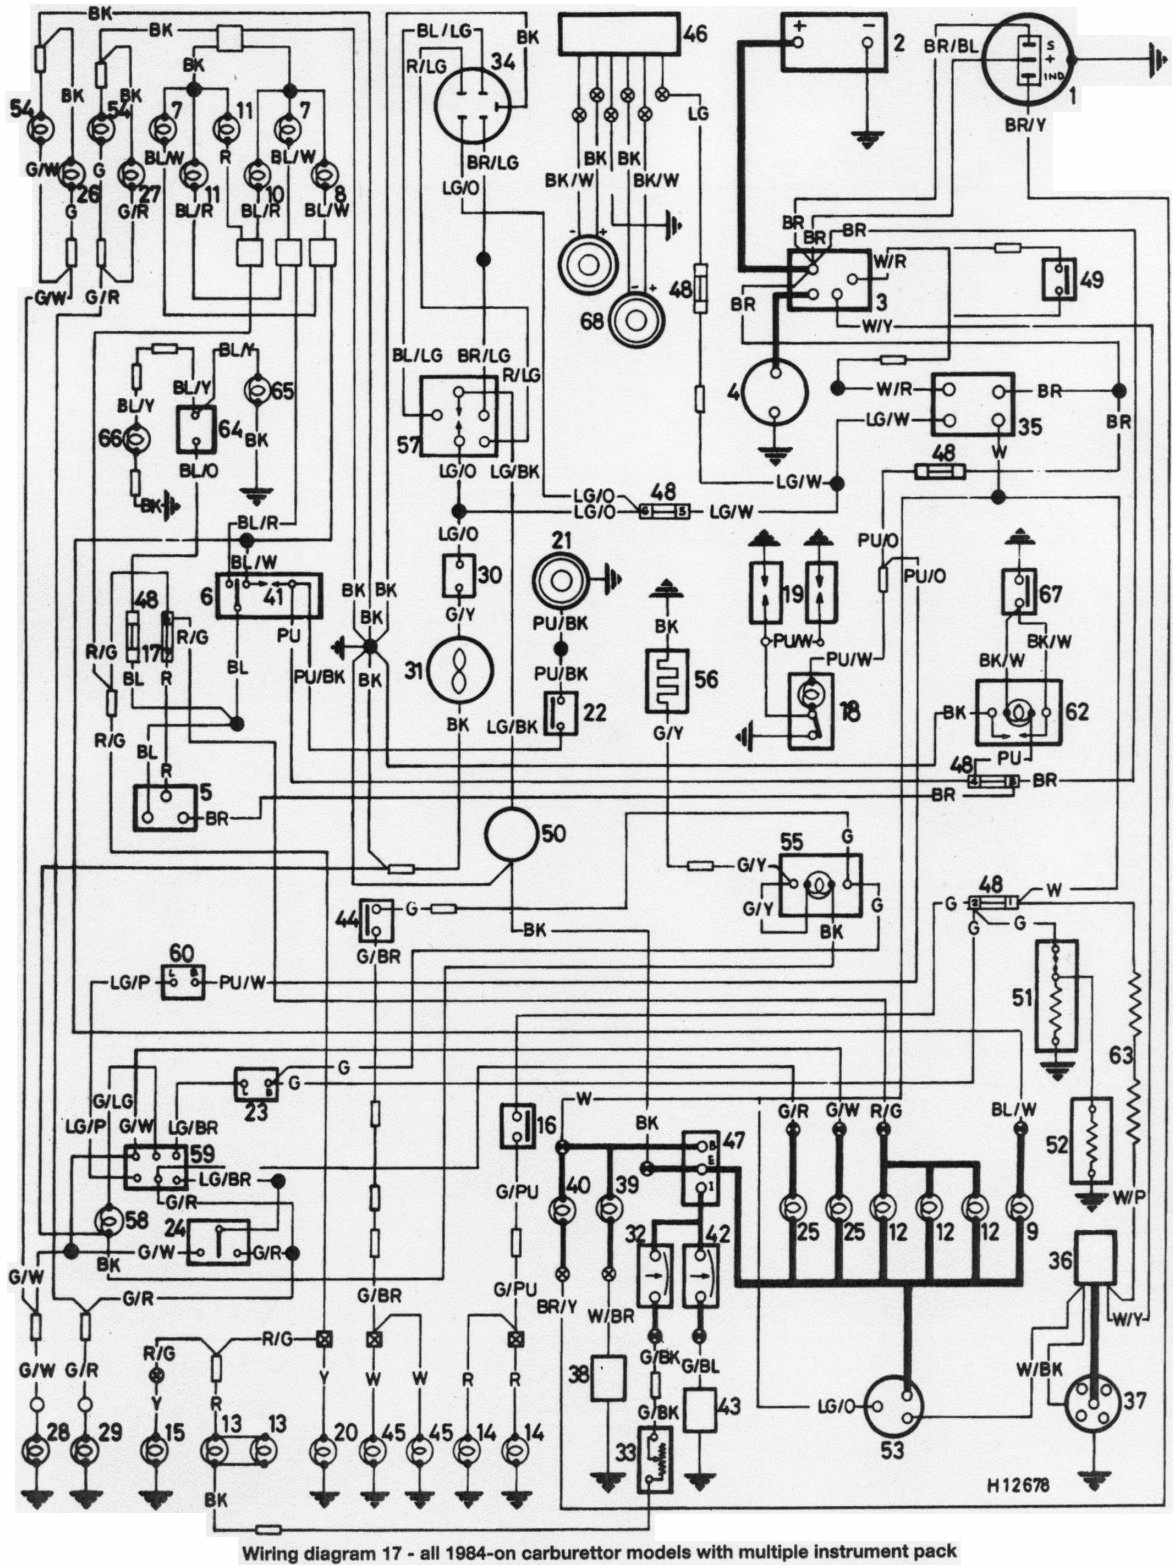 Diagrams1185836 Rover 25 Wiring Diagram MGF Schaltbilder – Land Rover Discovery Wiring Harness